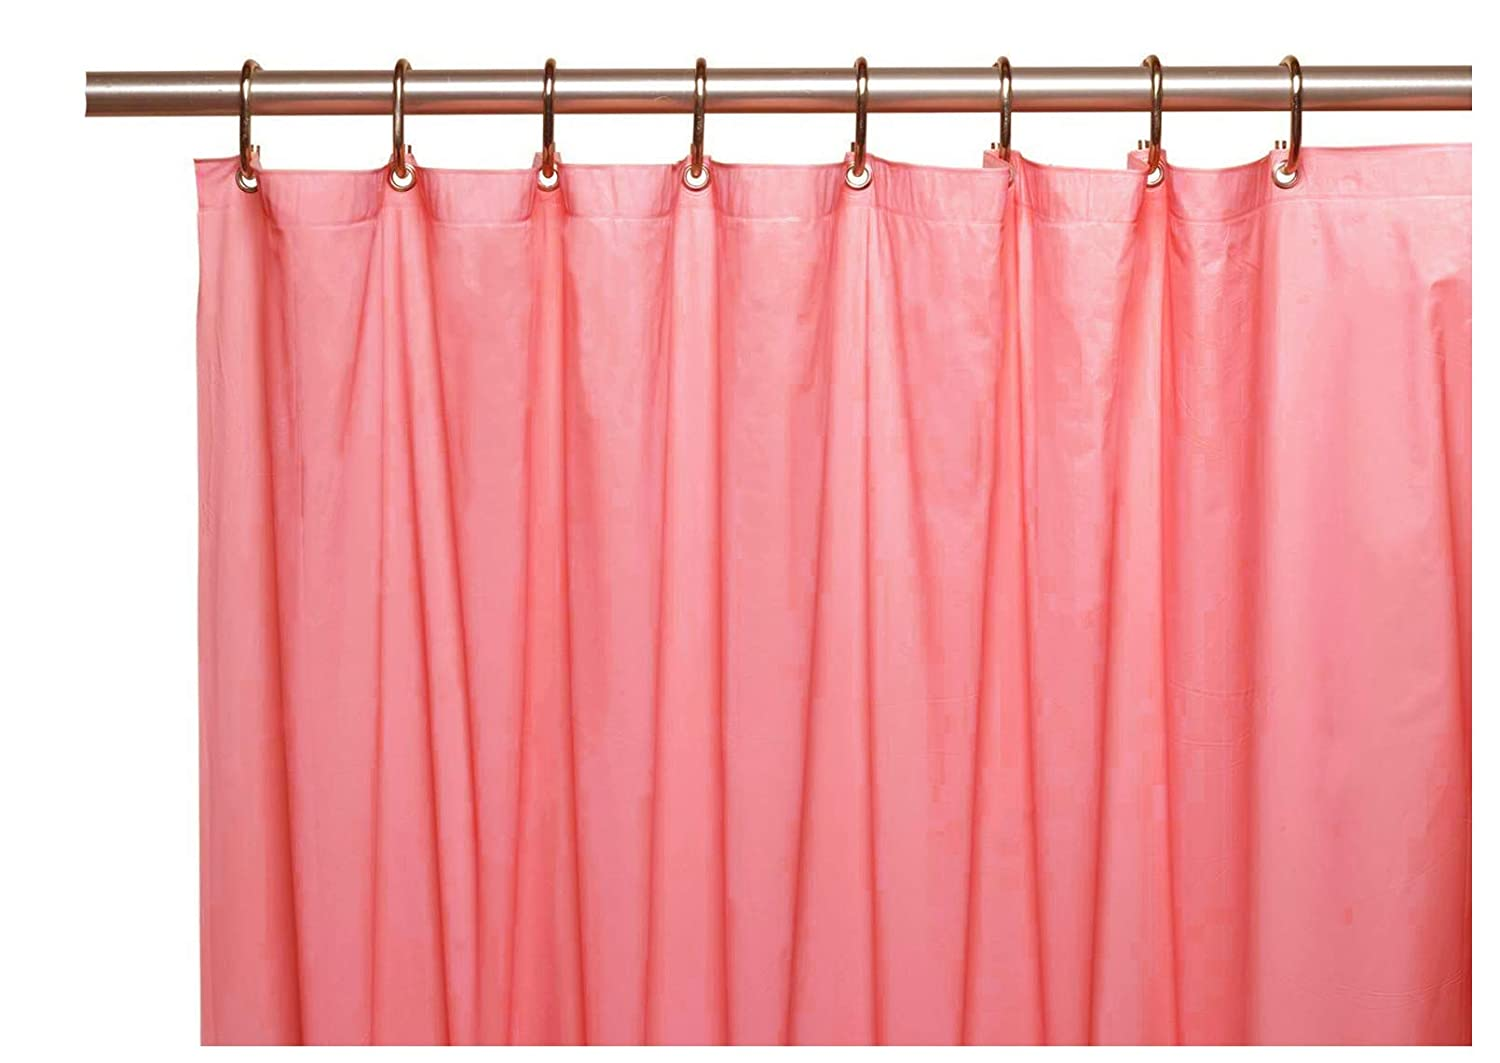 Amazon Elegant Home Heavy Duty Vinyl Shower Curtain Liner With 12 Metal Grommets Dusty Rose Kitchen